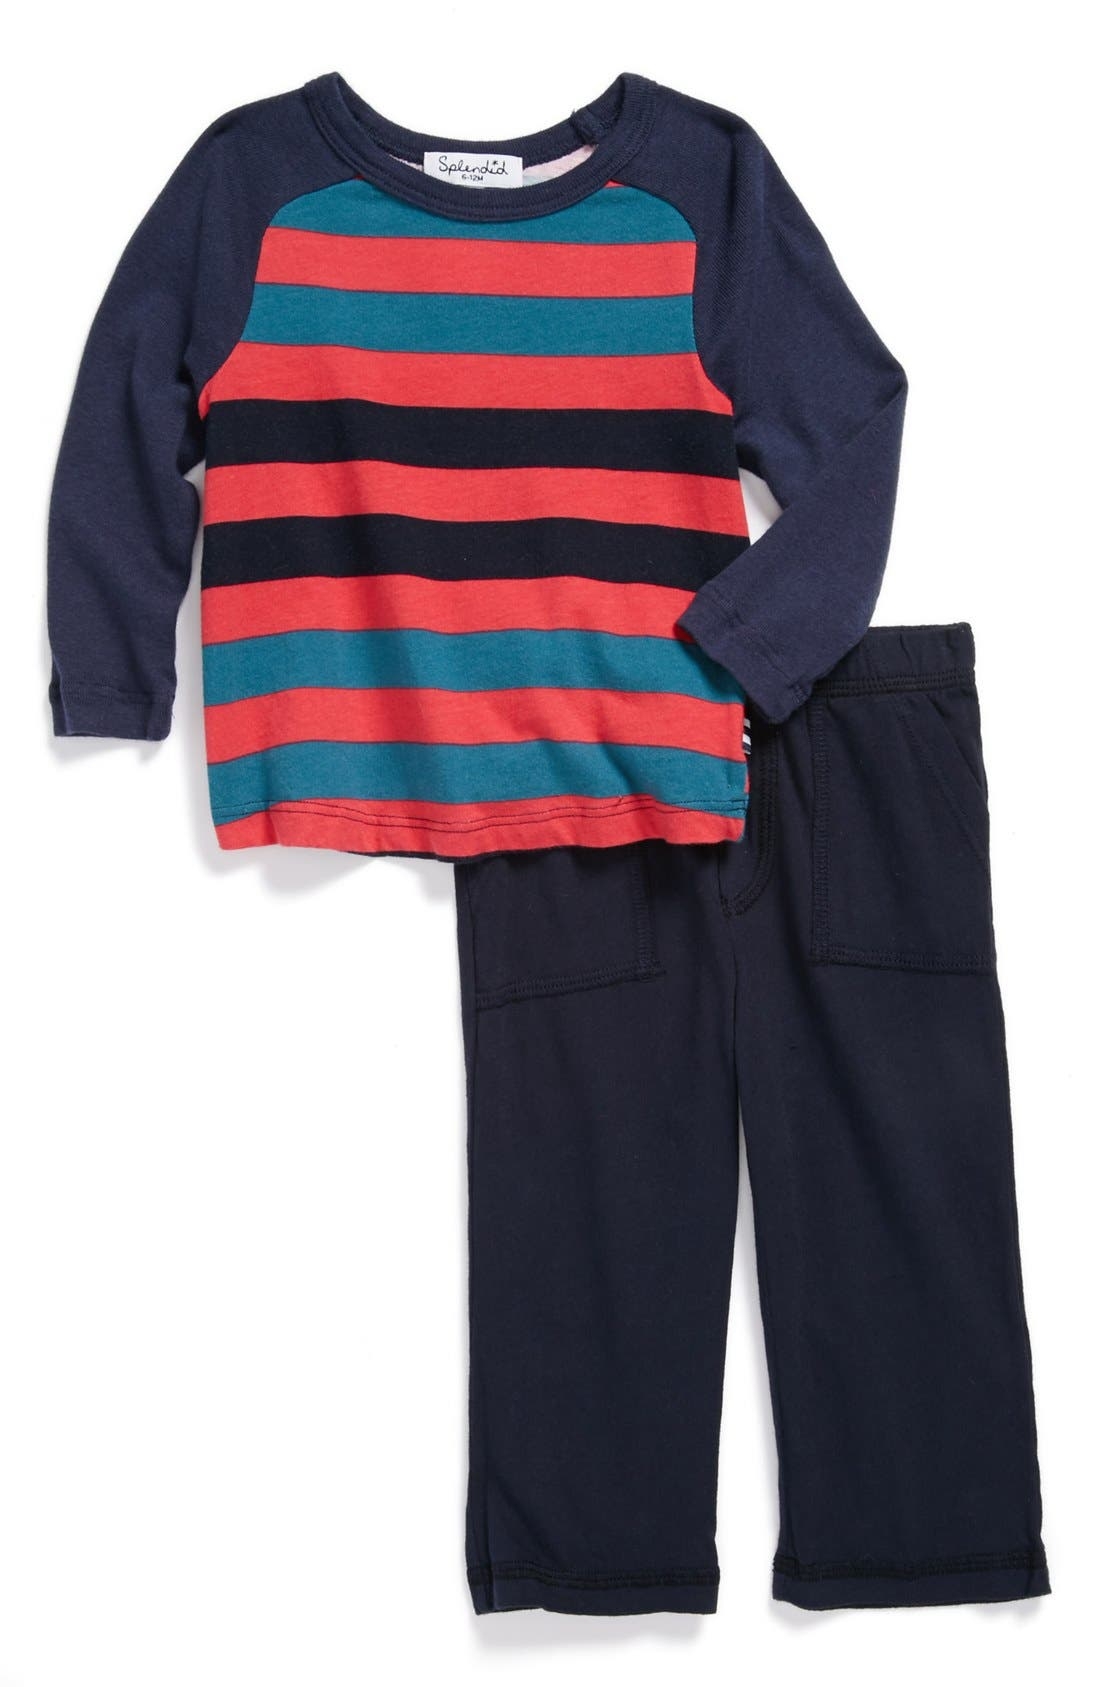 Main Image - Splendid T-Shirt & Pants (Baby)